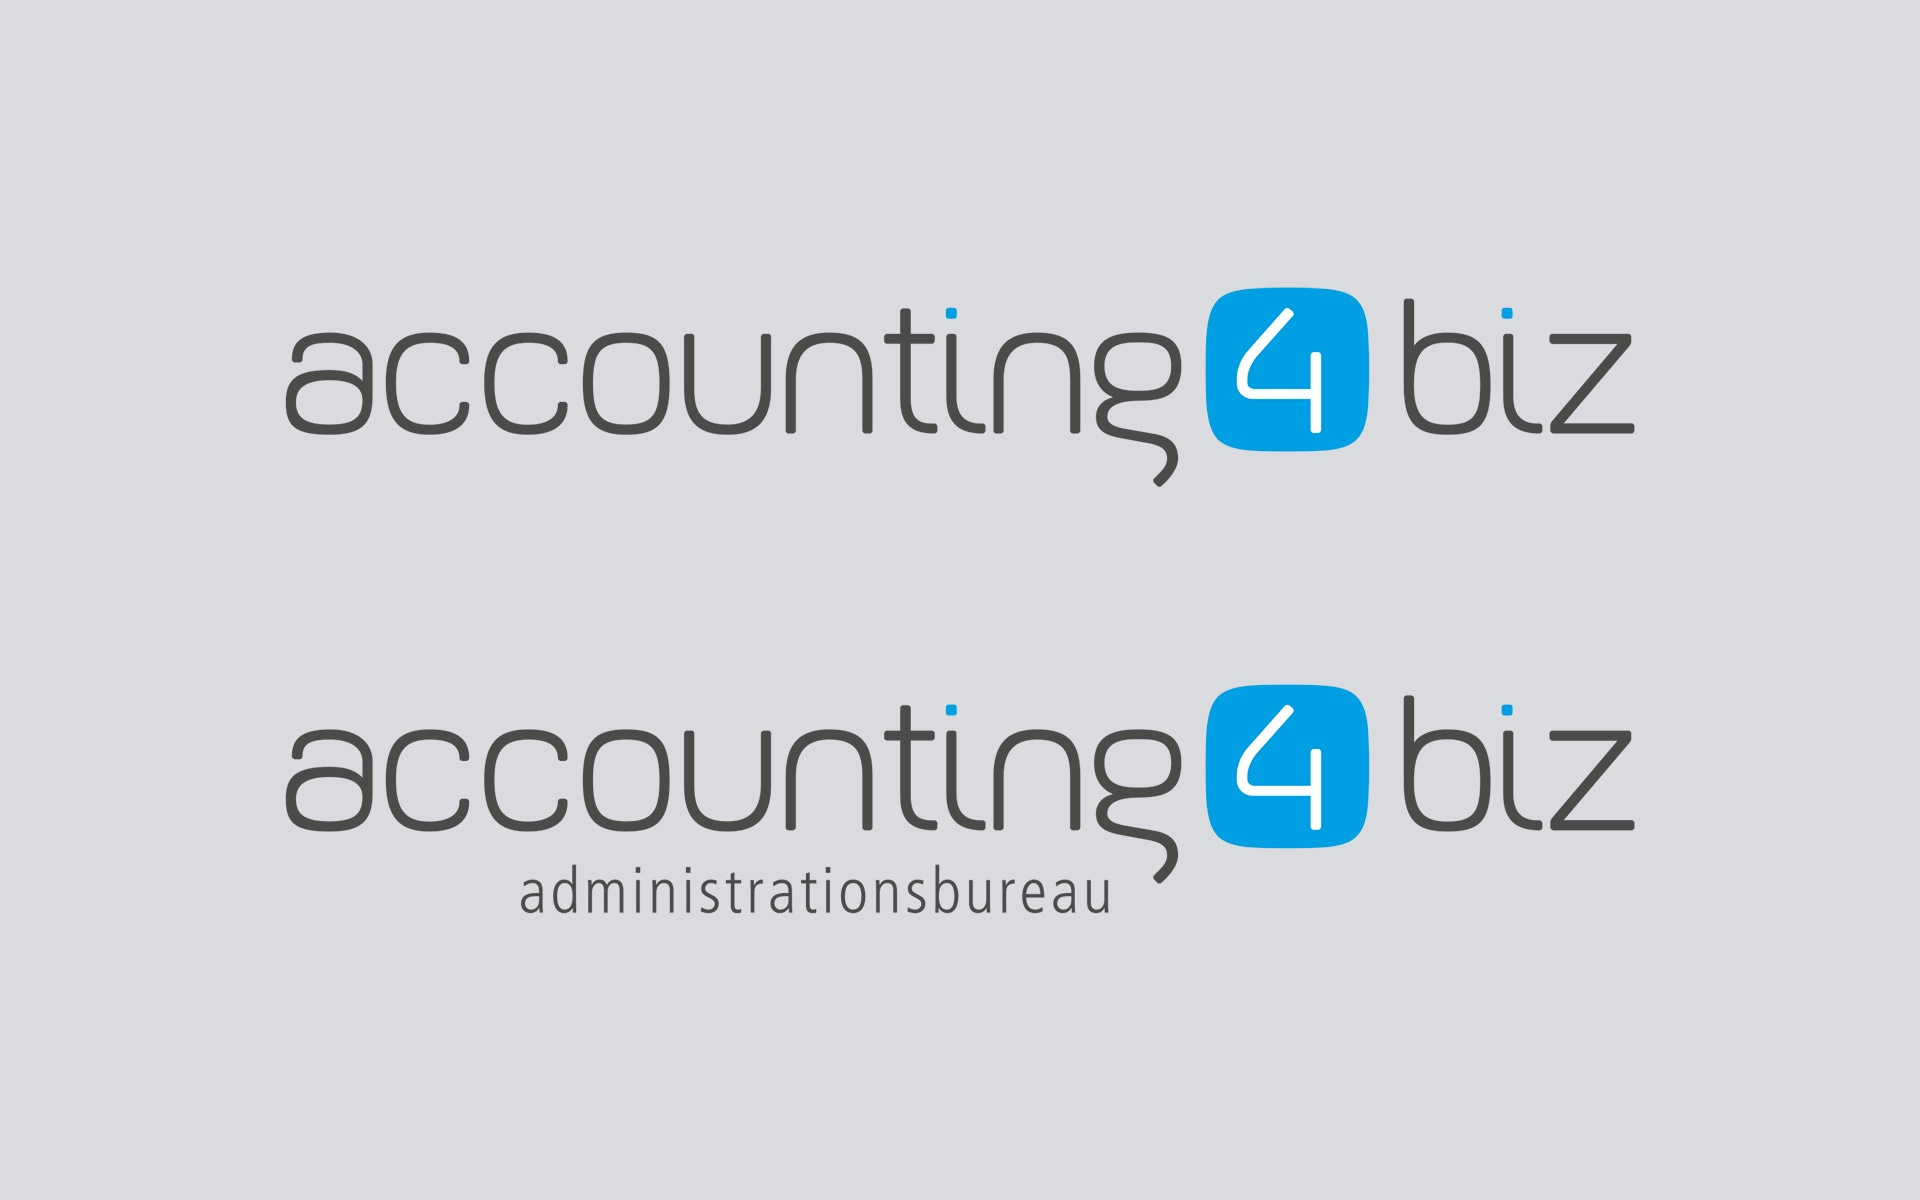 accounting4biz: Logo